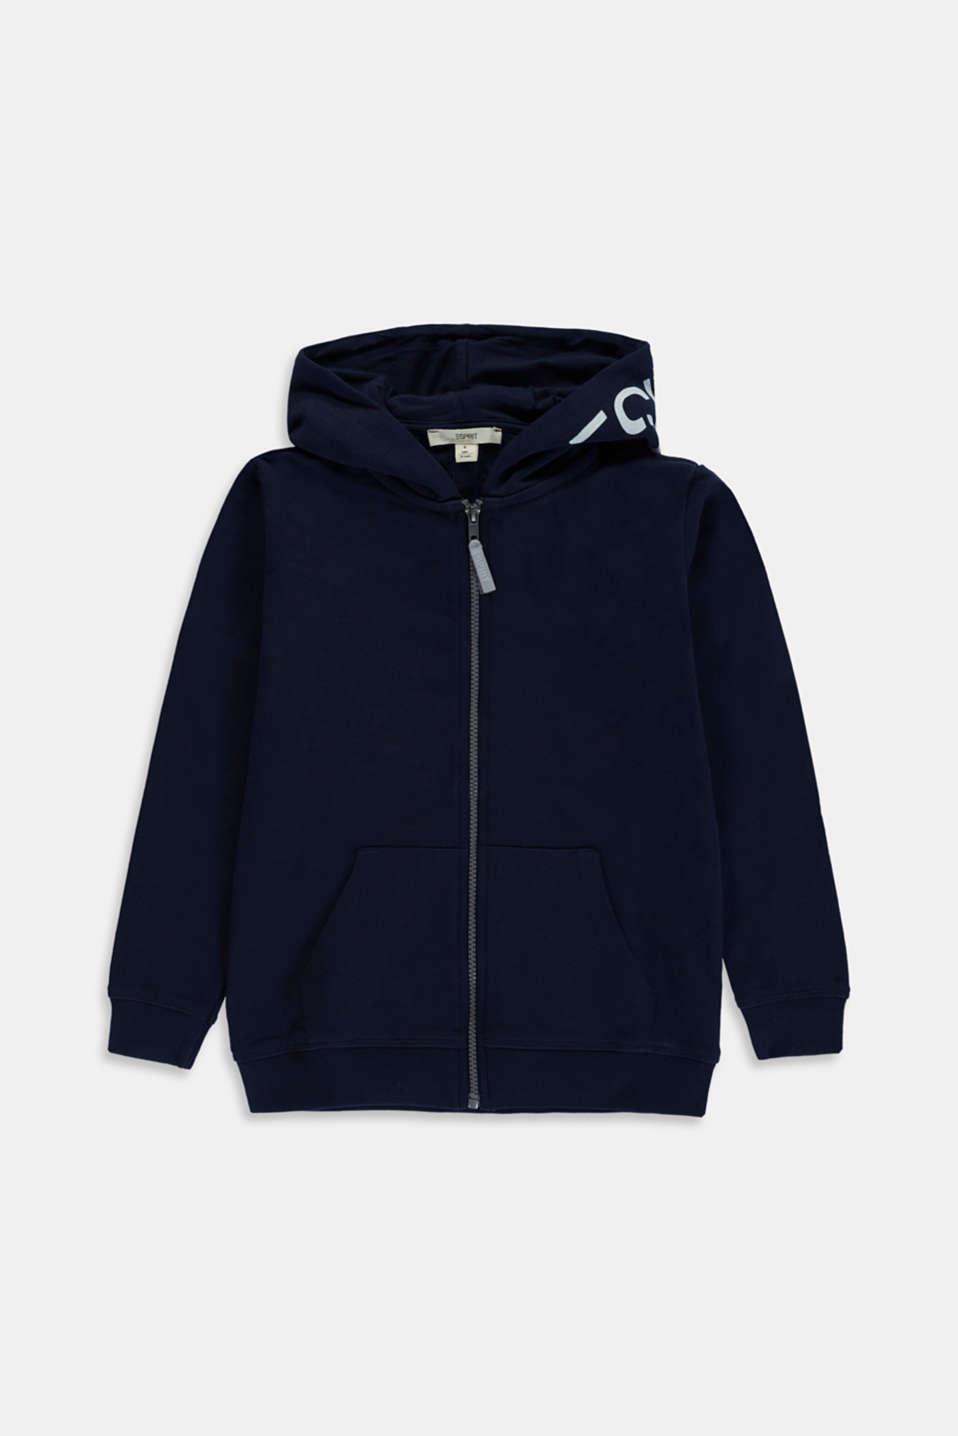 Esprit - Zip-up hoodie with a logo print, 100% cotton